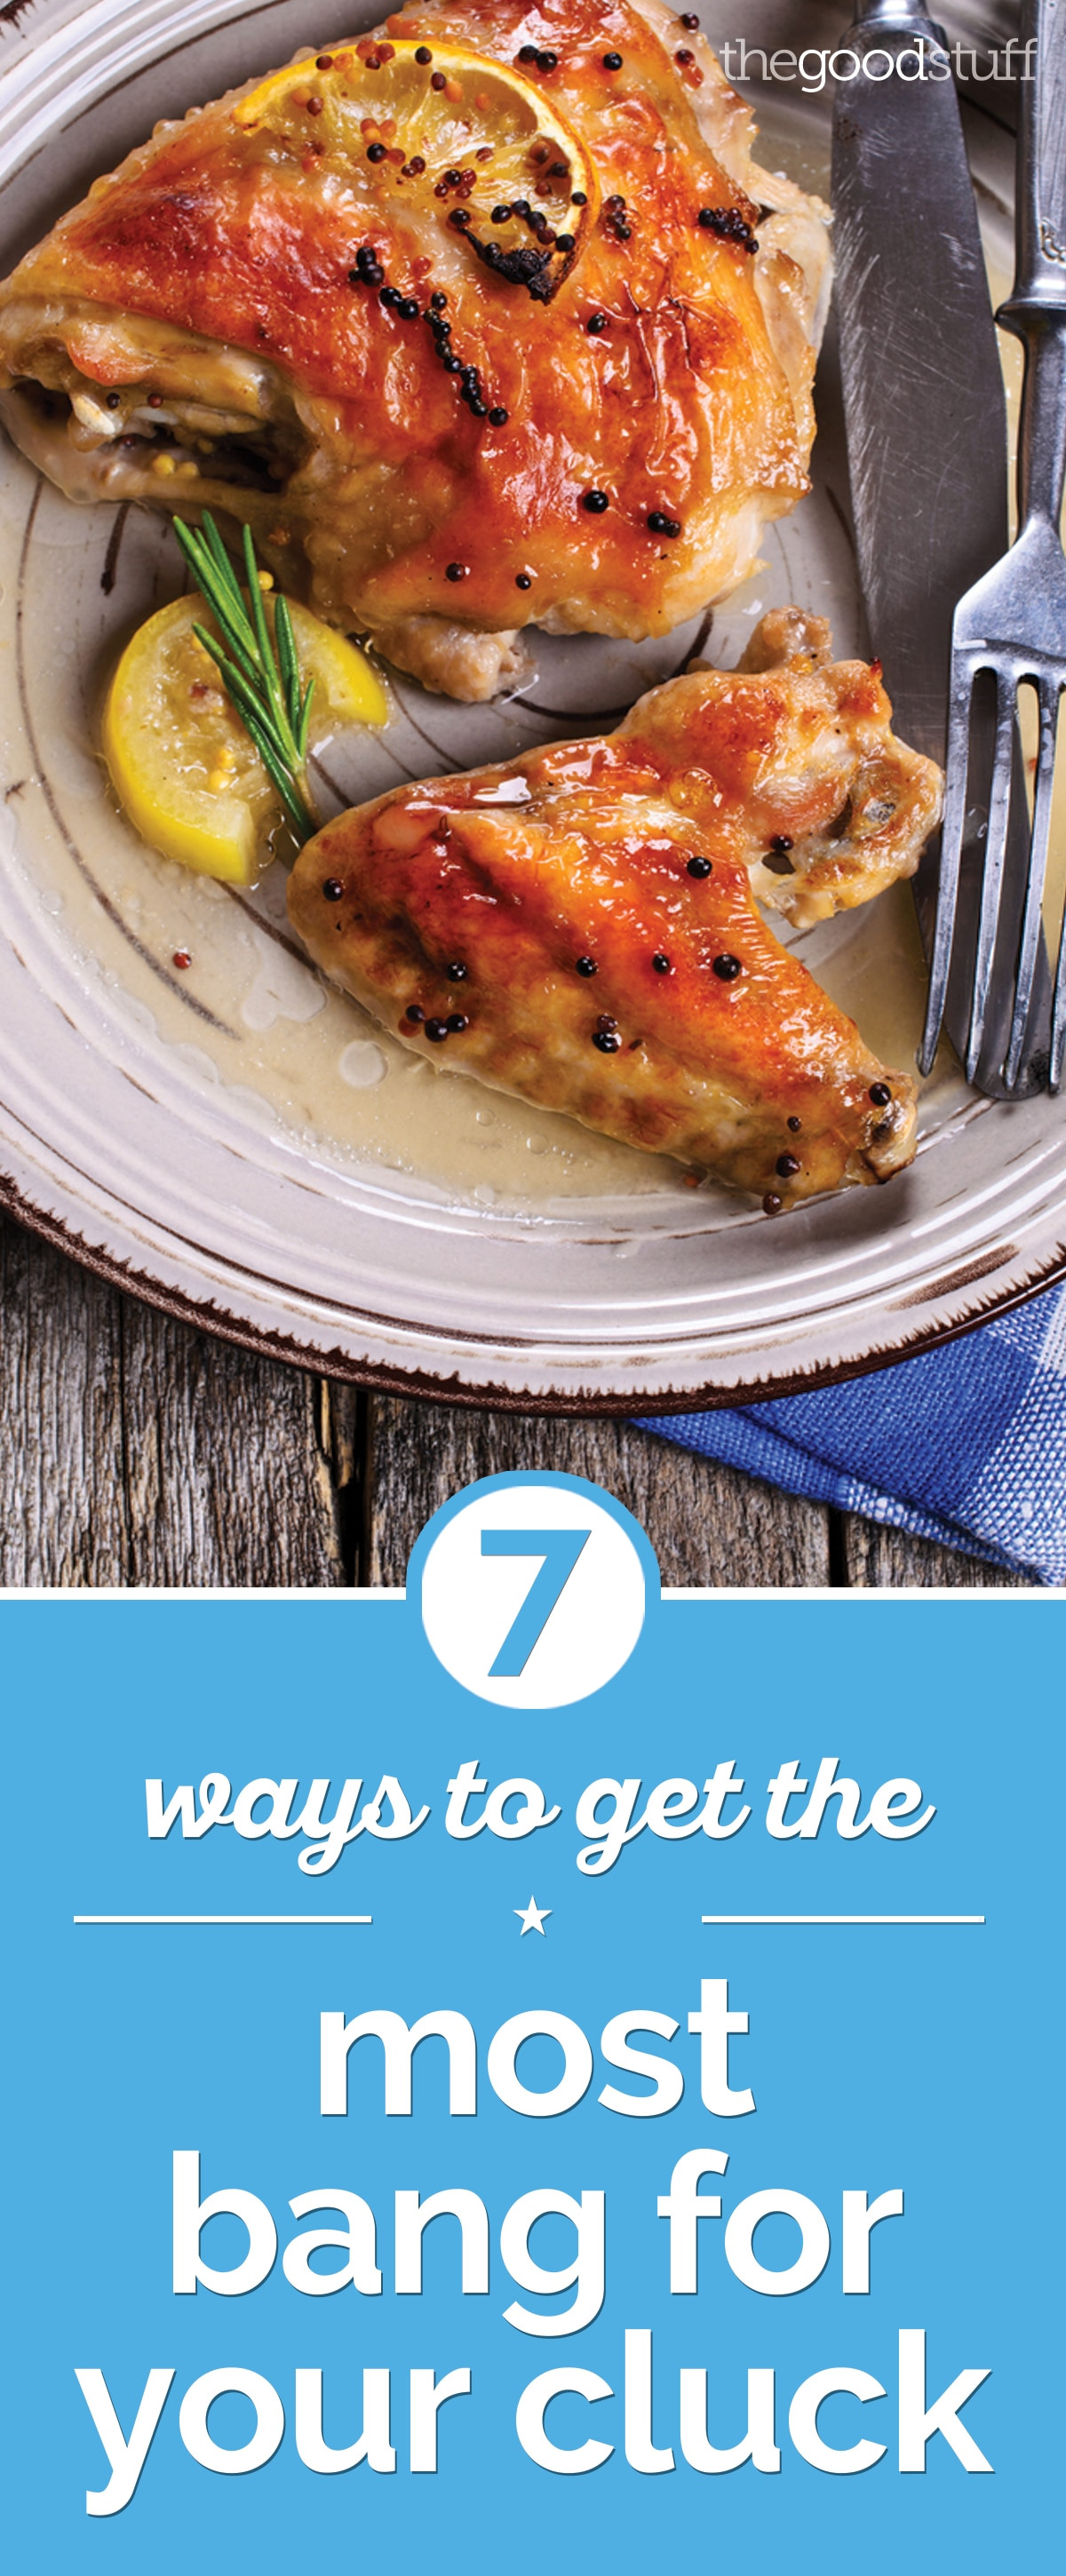 How Long Do You Cook A Whole Chicken  7 Ways to Get the Most Bang for Your Cluck thegoodstuff